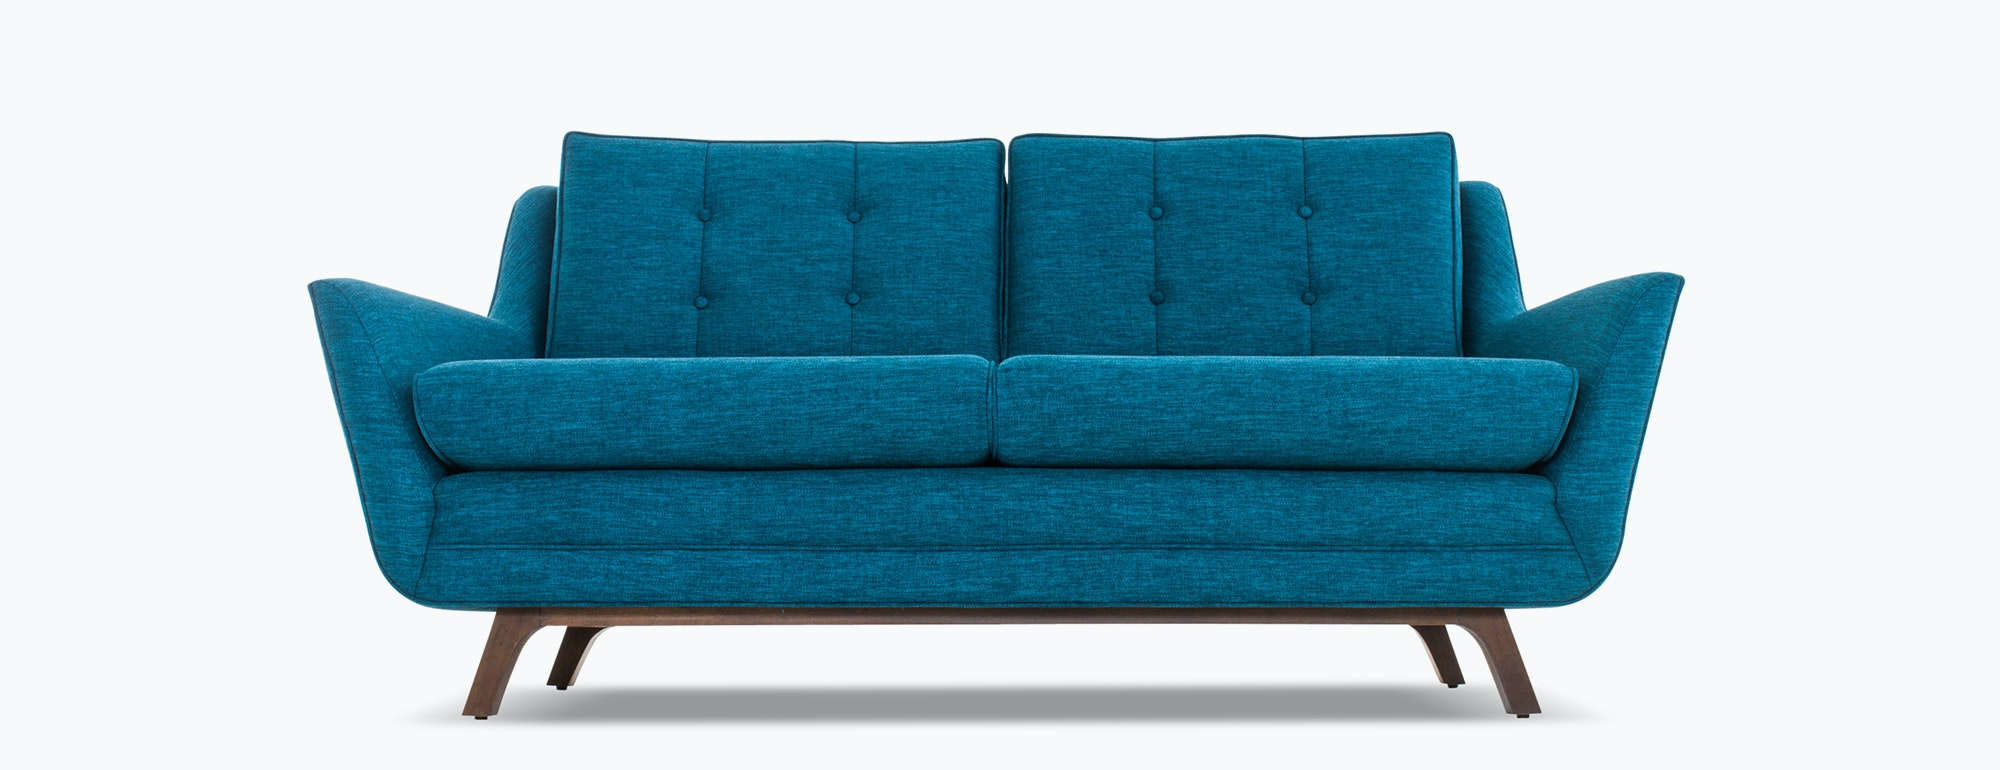 shown in Key Largo Zenith Teal Fabric